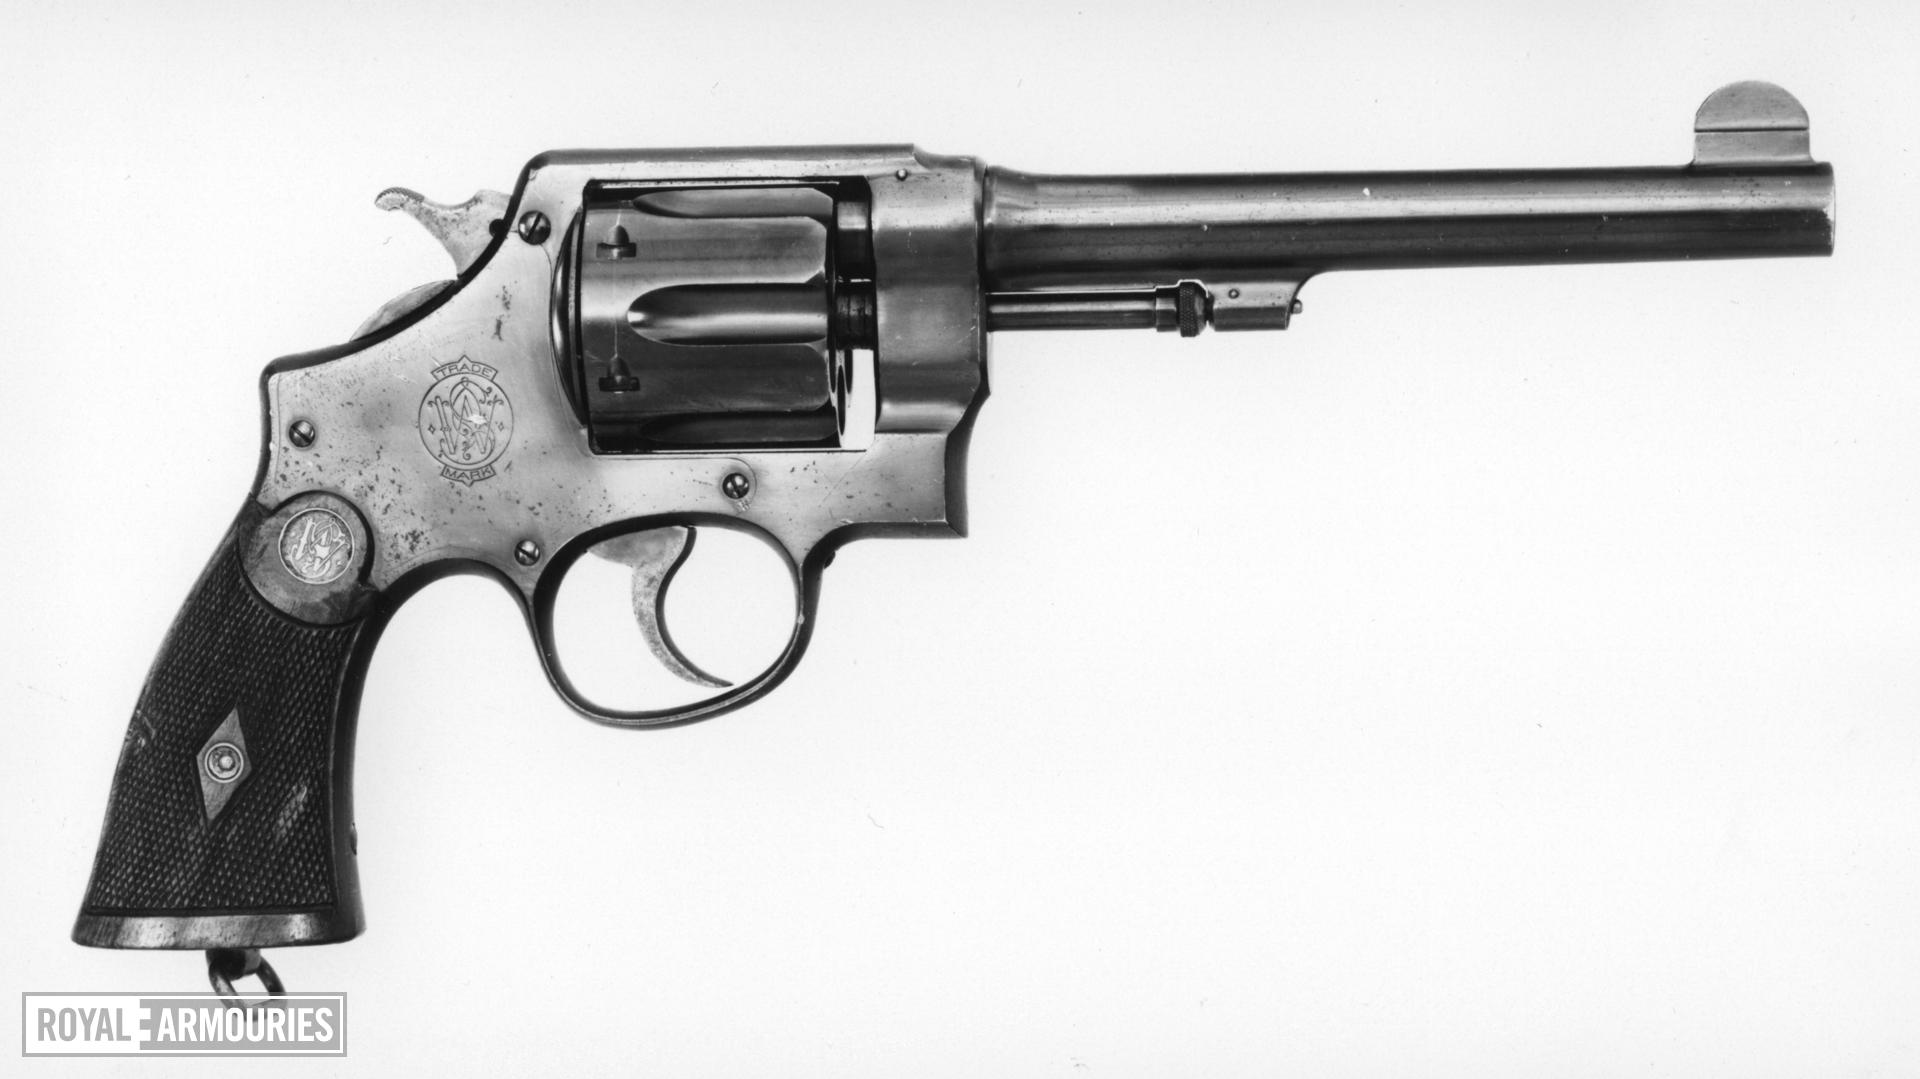 Centrefire six-shot revolver - Smith and Wesson New Century, 1st model 1908